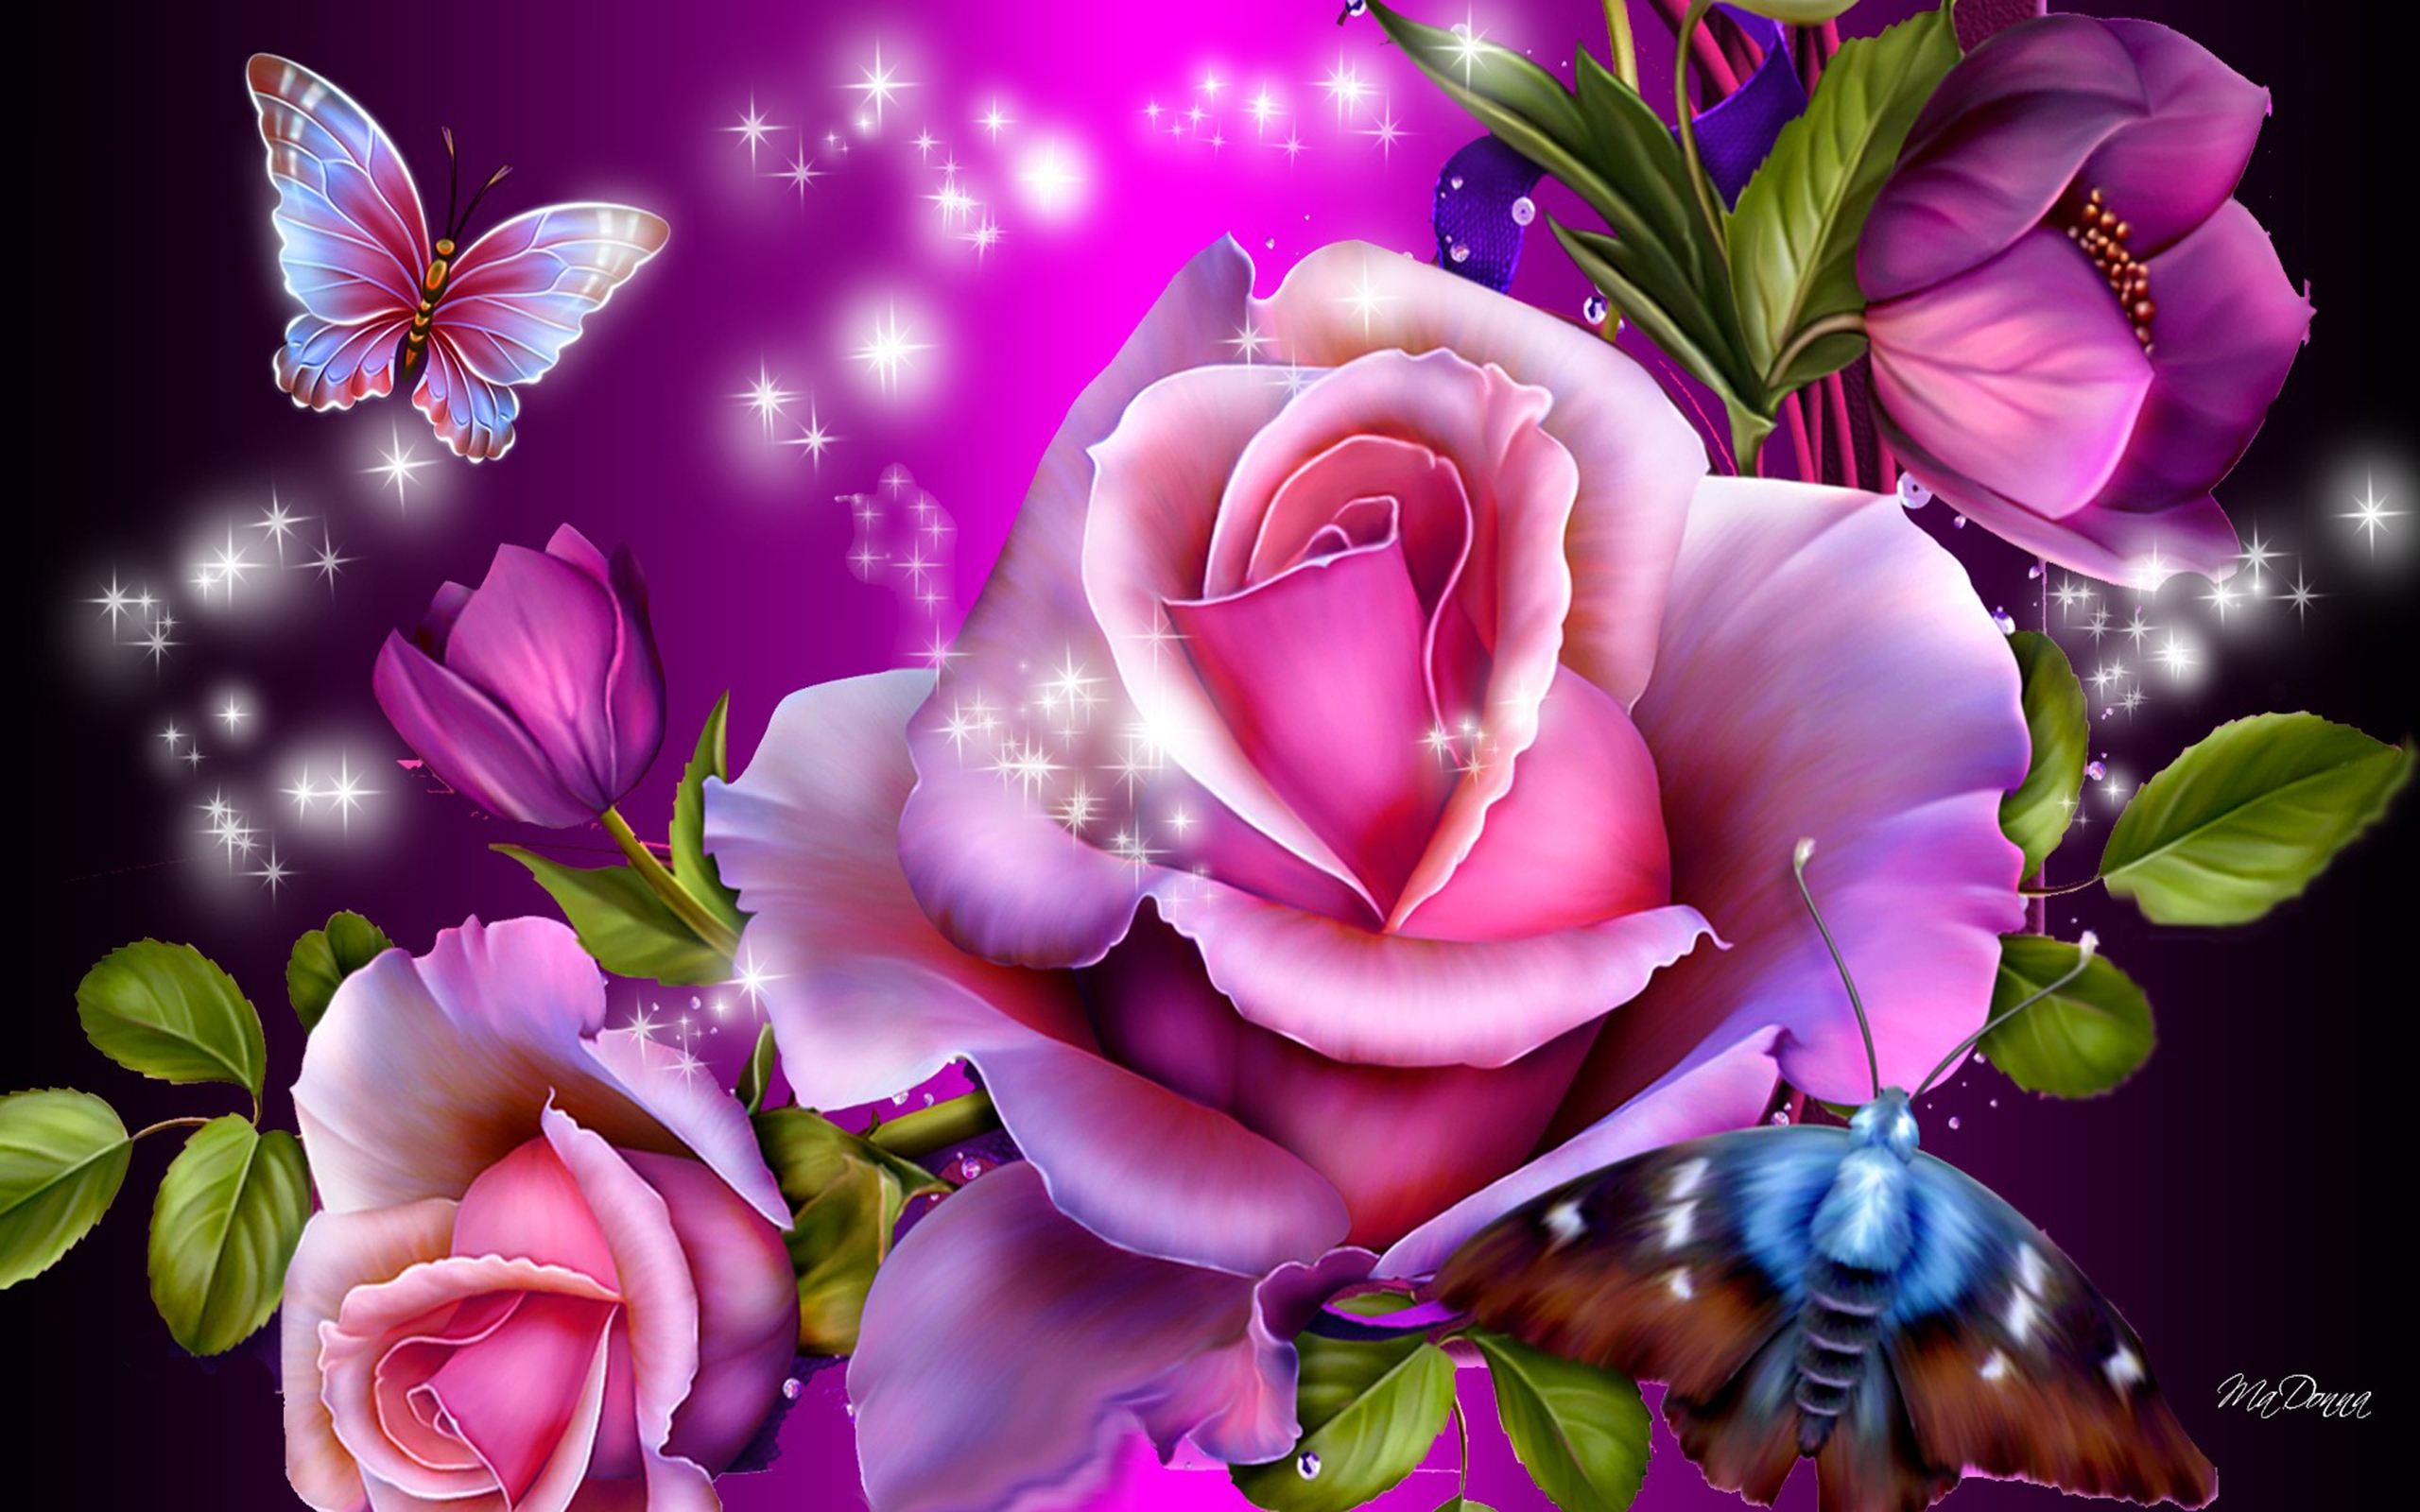 Roses and Butterflies HD Wallpaper Background Image 2560x1600 2560x1600